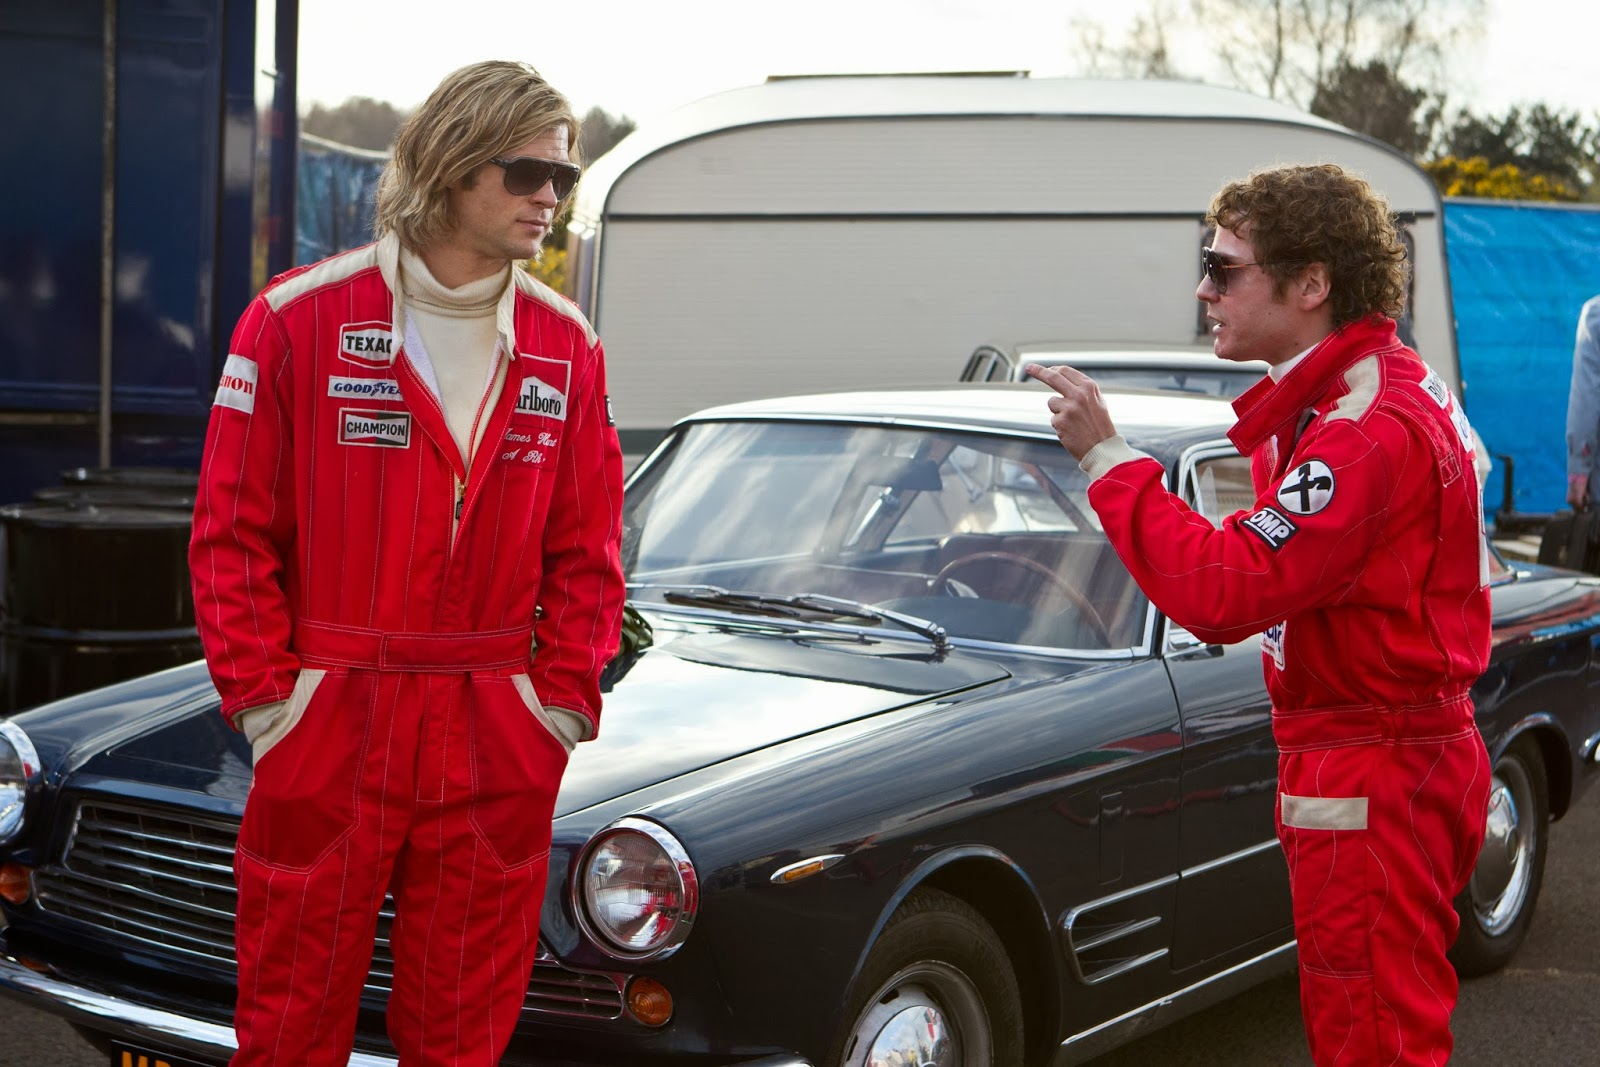 Rush 2013 chad likes movies rush voltagebd Image collections